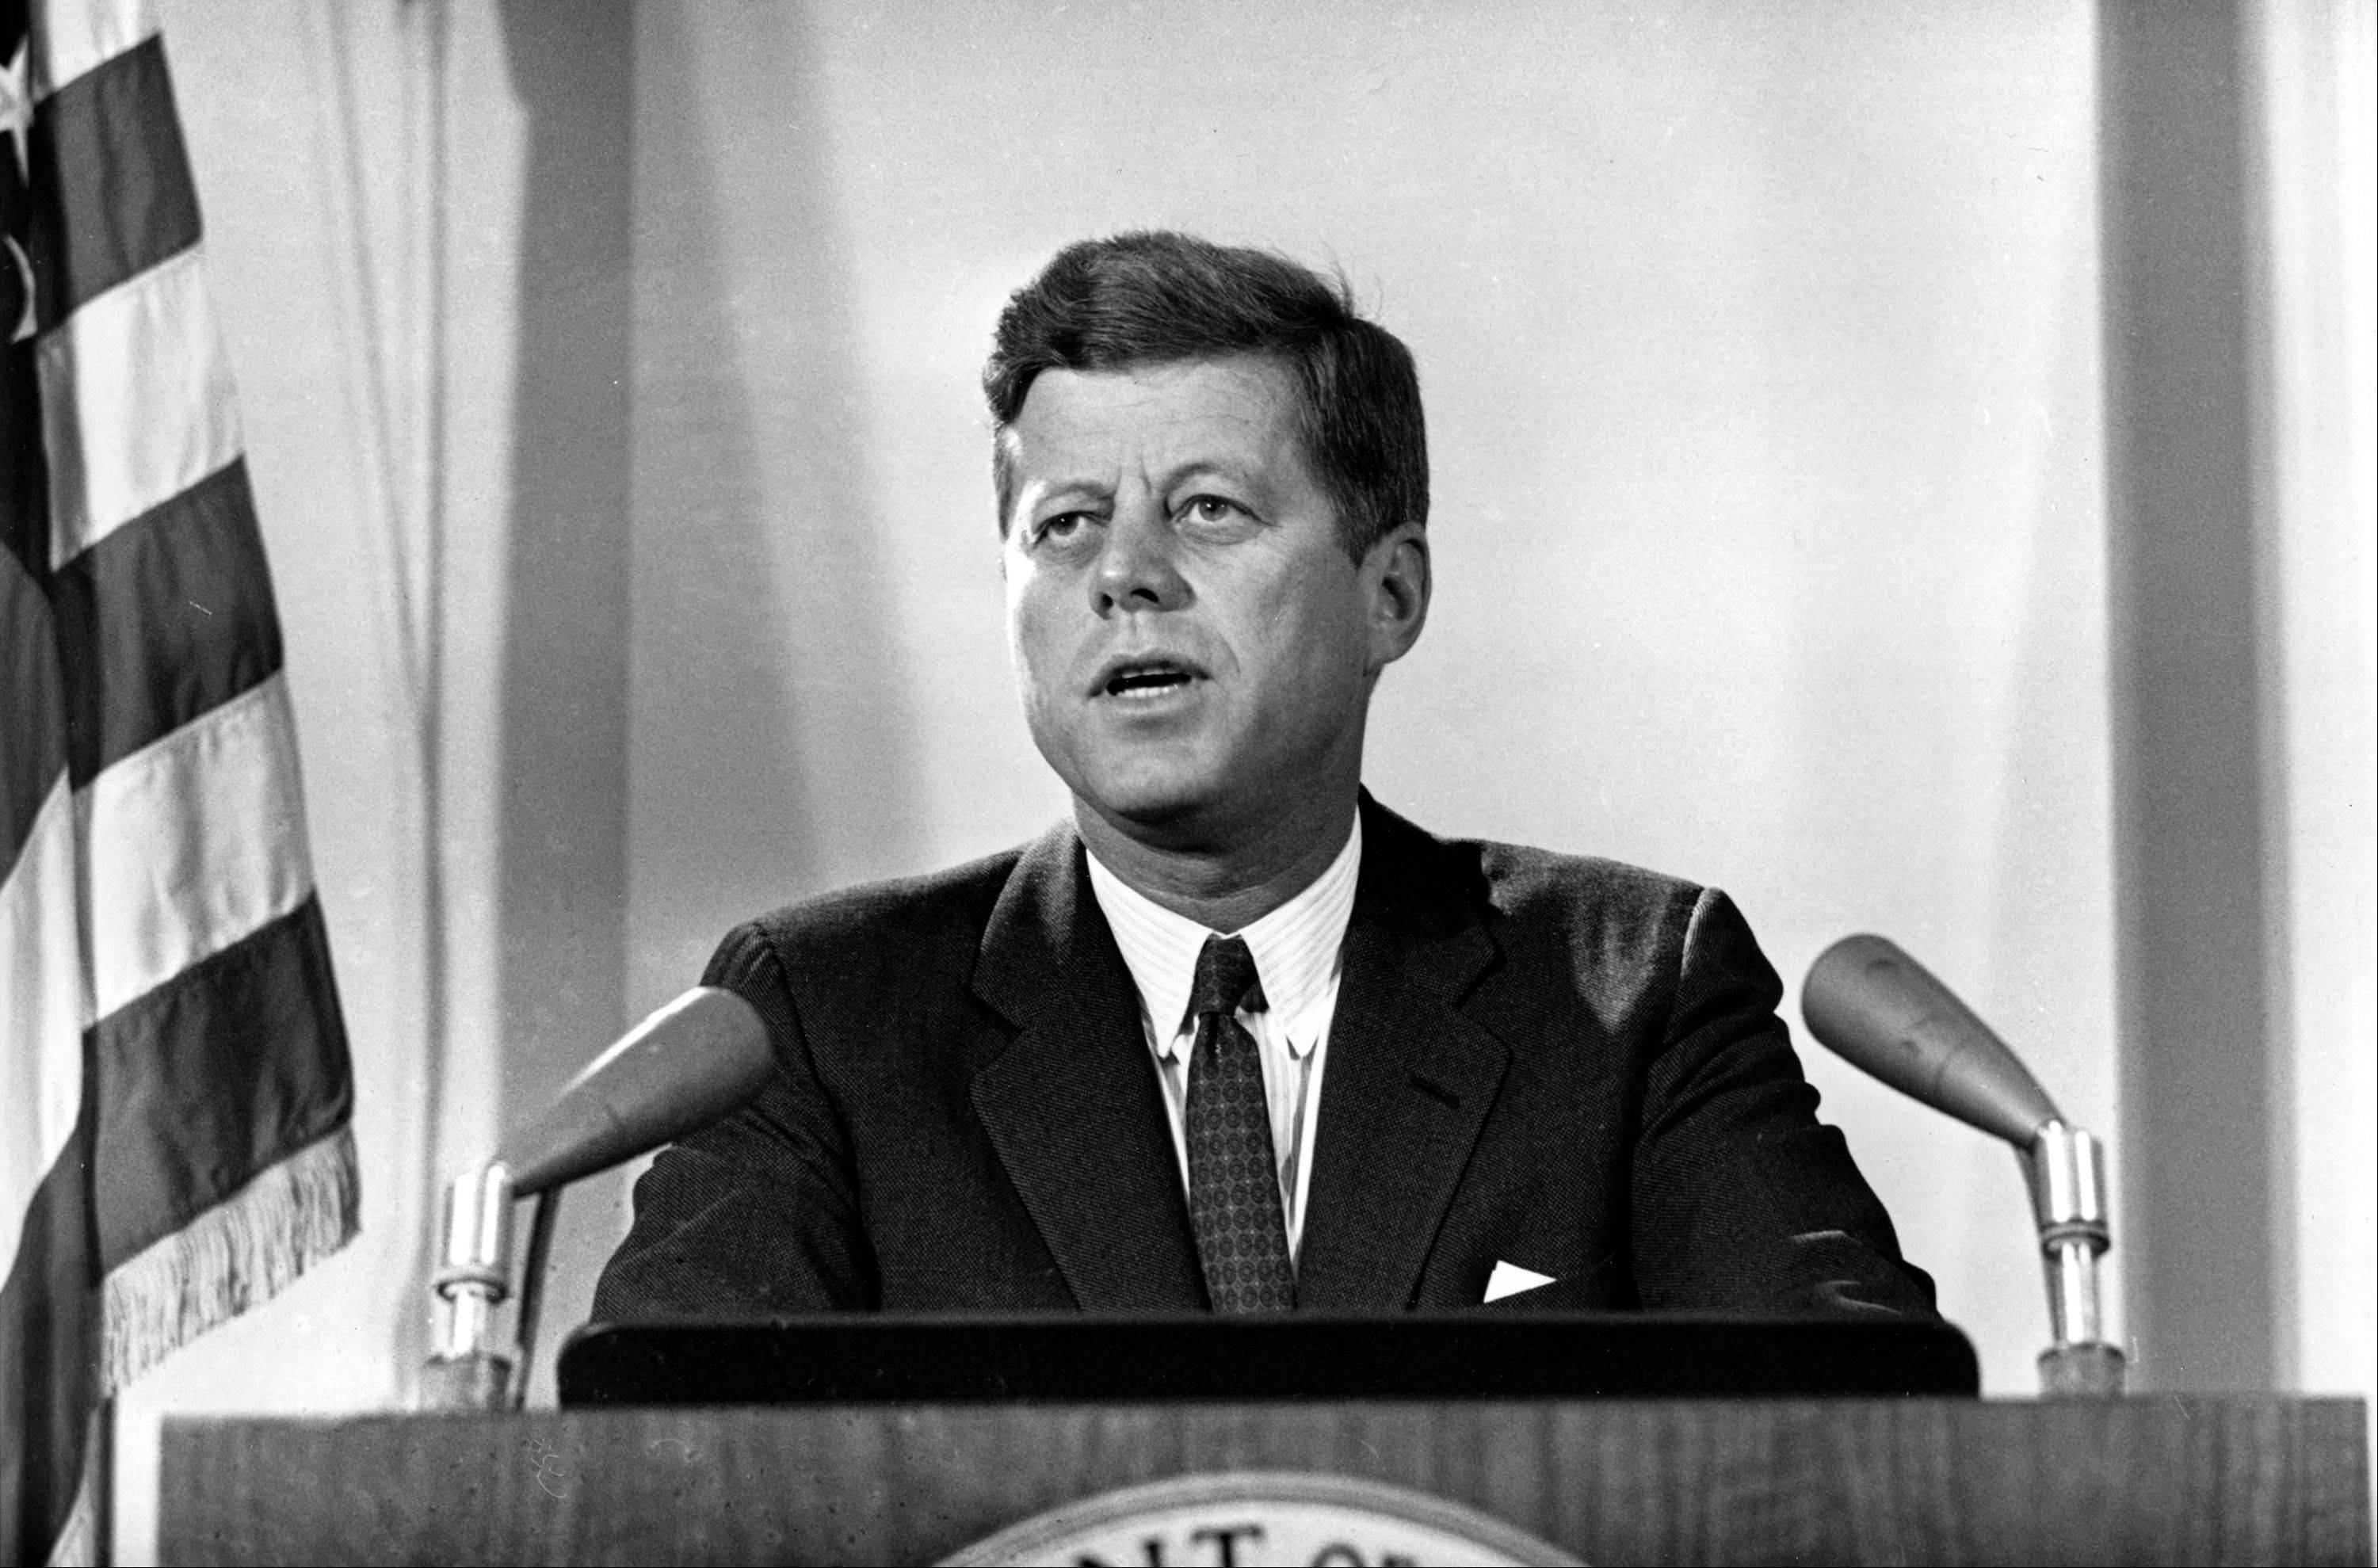 U.S. President John F. Kennedy reports to the nation on the status of the Cuban missile crisis from Washington, D.C., on Nov. 2, 1962.